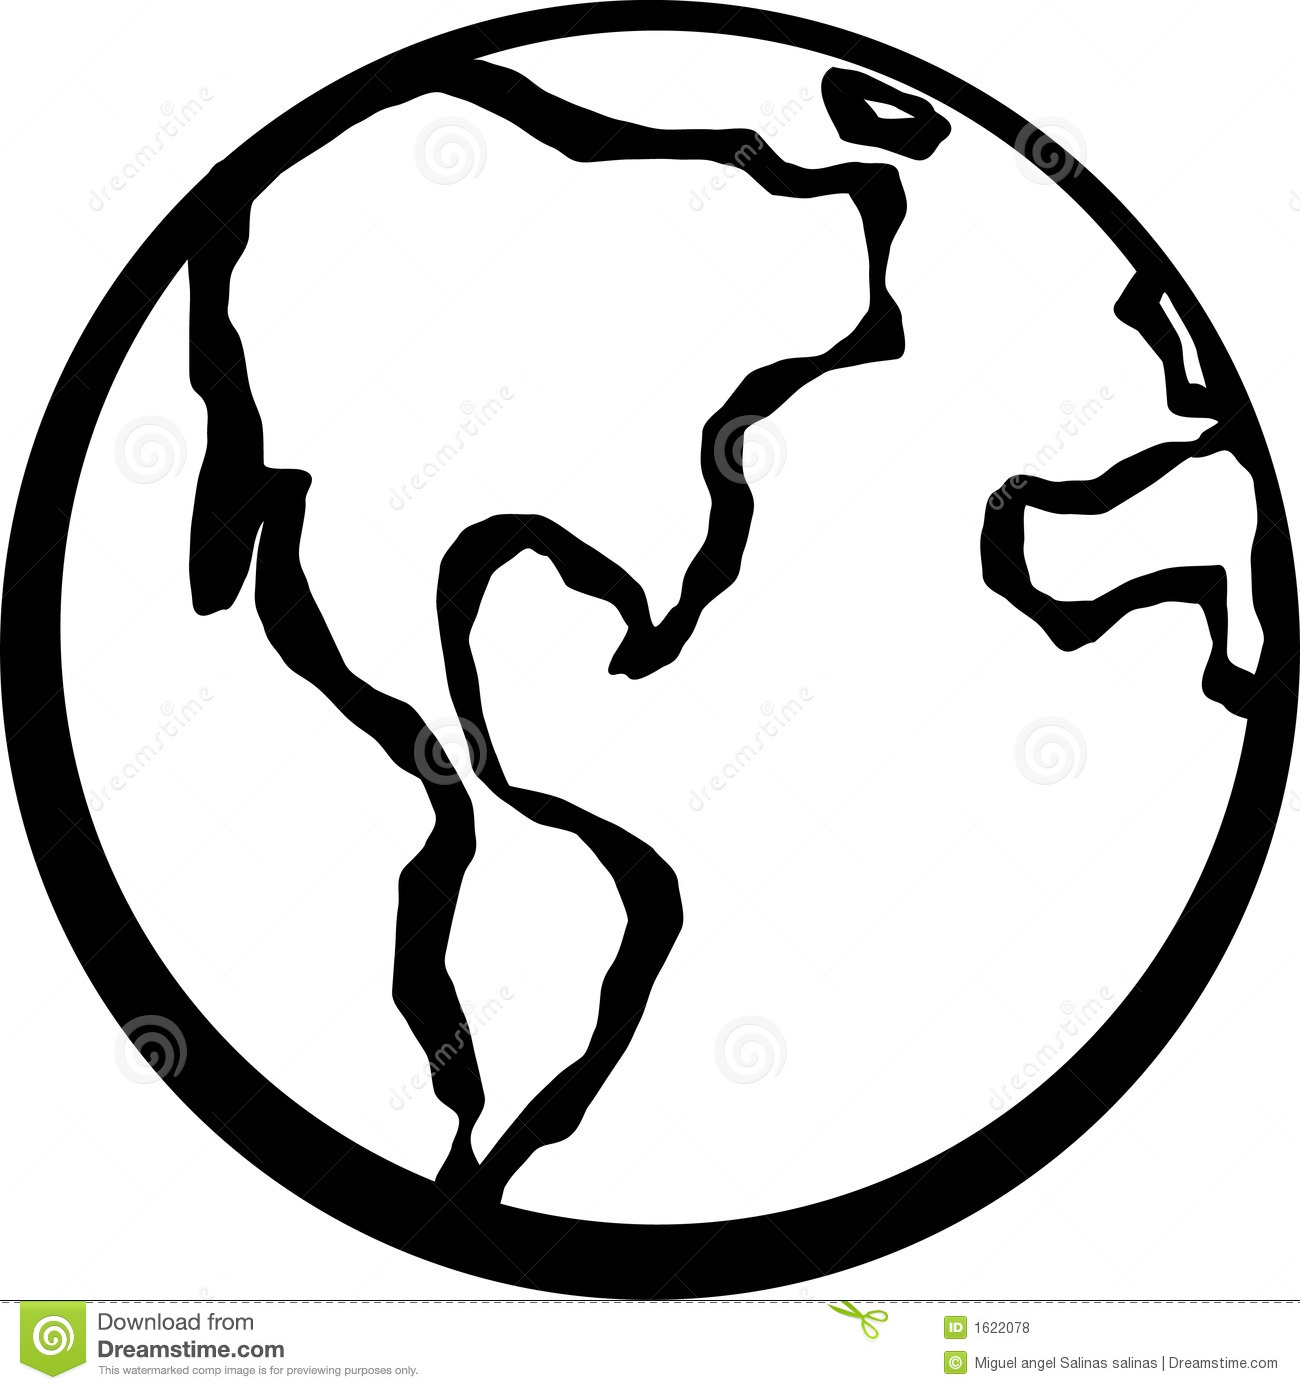 22381 besides Brazil Outline Map besides Stock Photography South America Map Shadow Image3861572 additionally Brain Sketch moreover Stock Images Builadings Image27979994. on map of america download